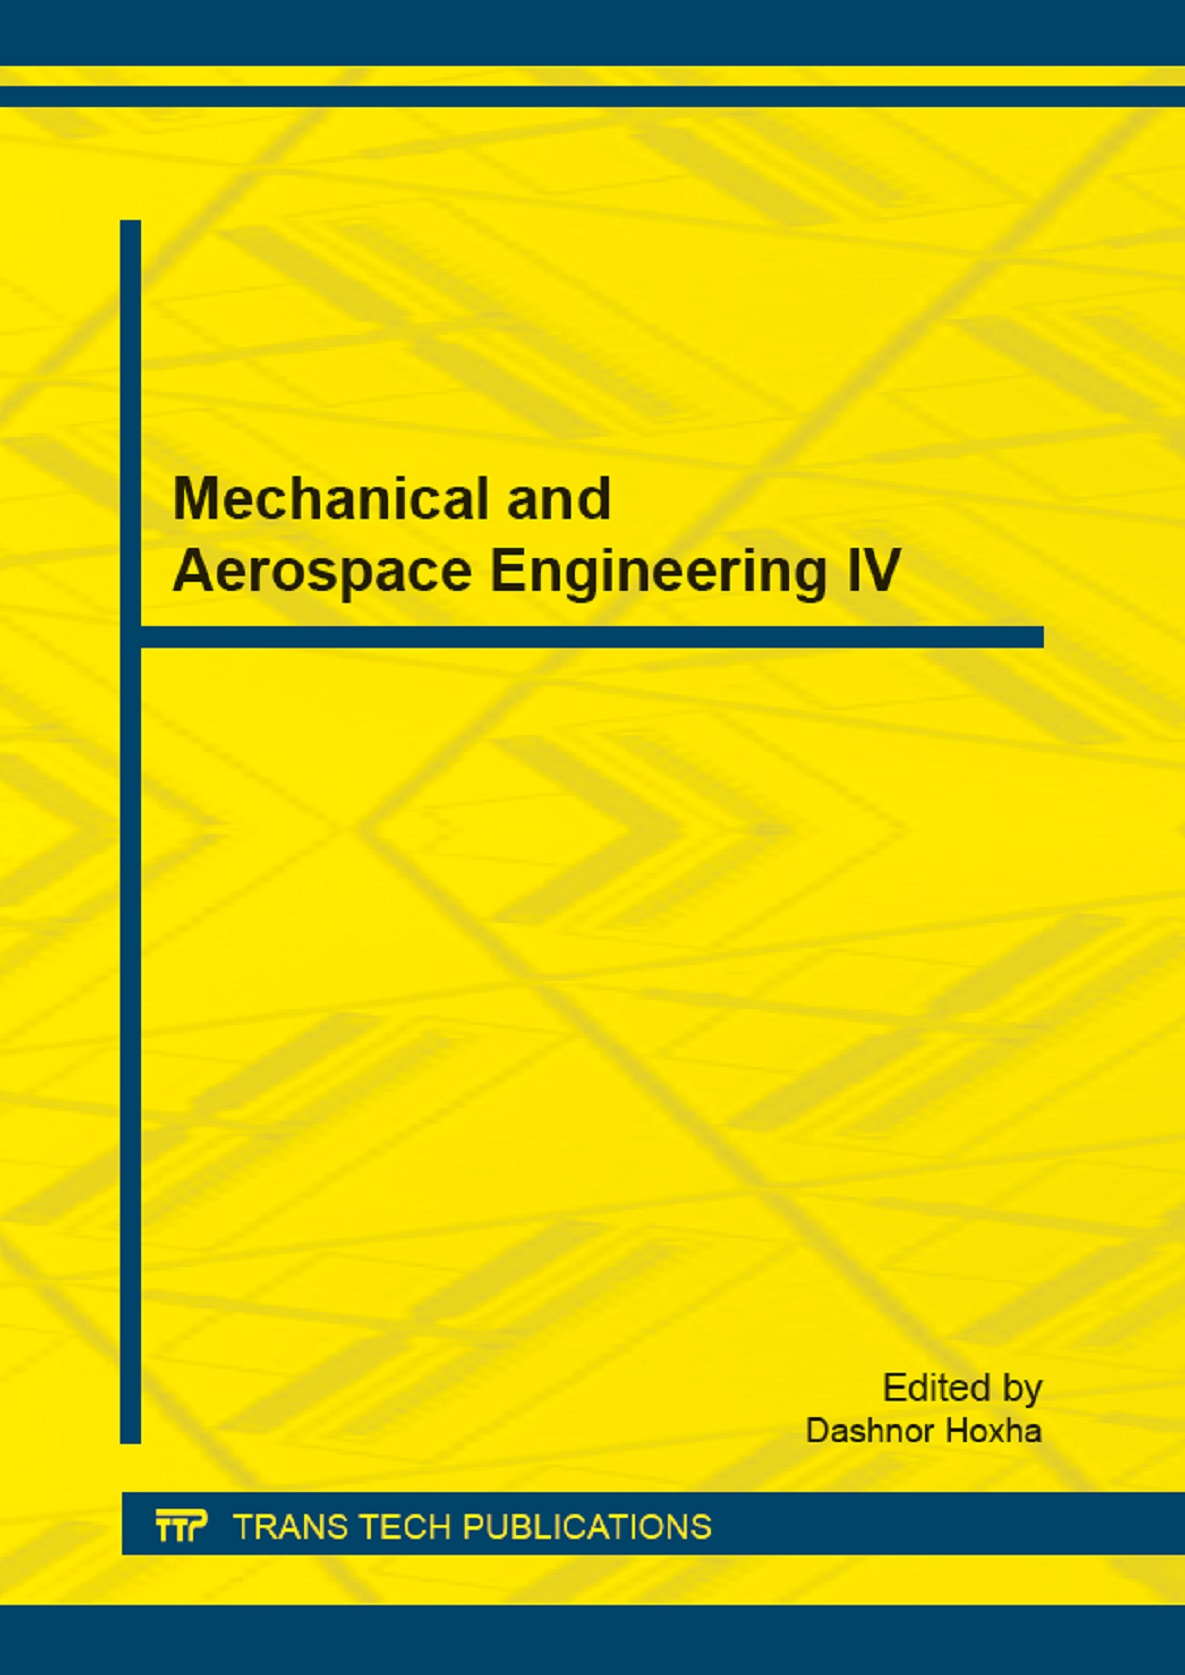 Mechanical and Aerospace Engineering IV